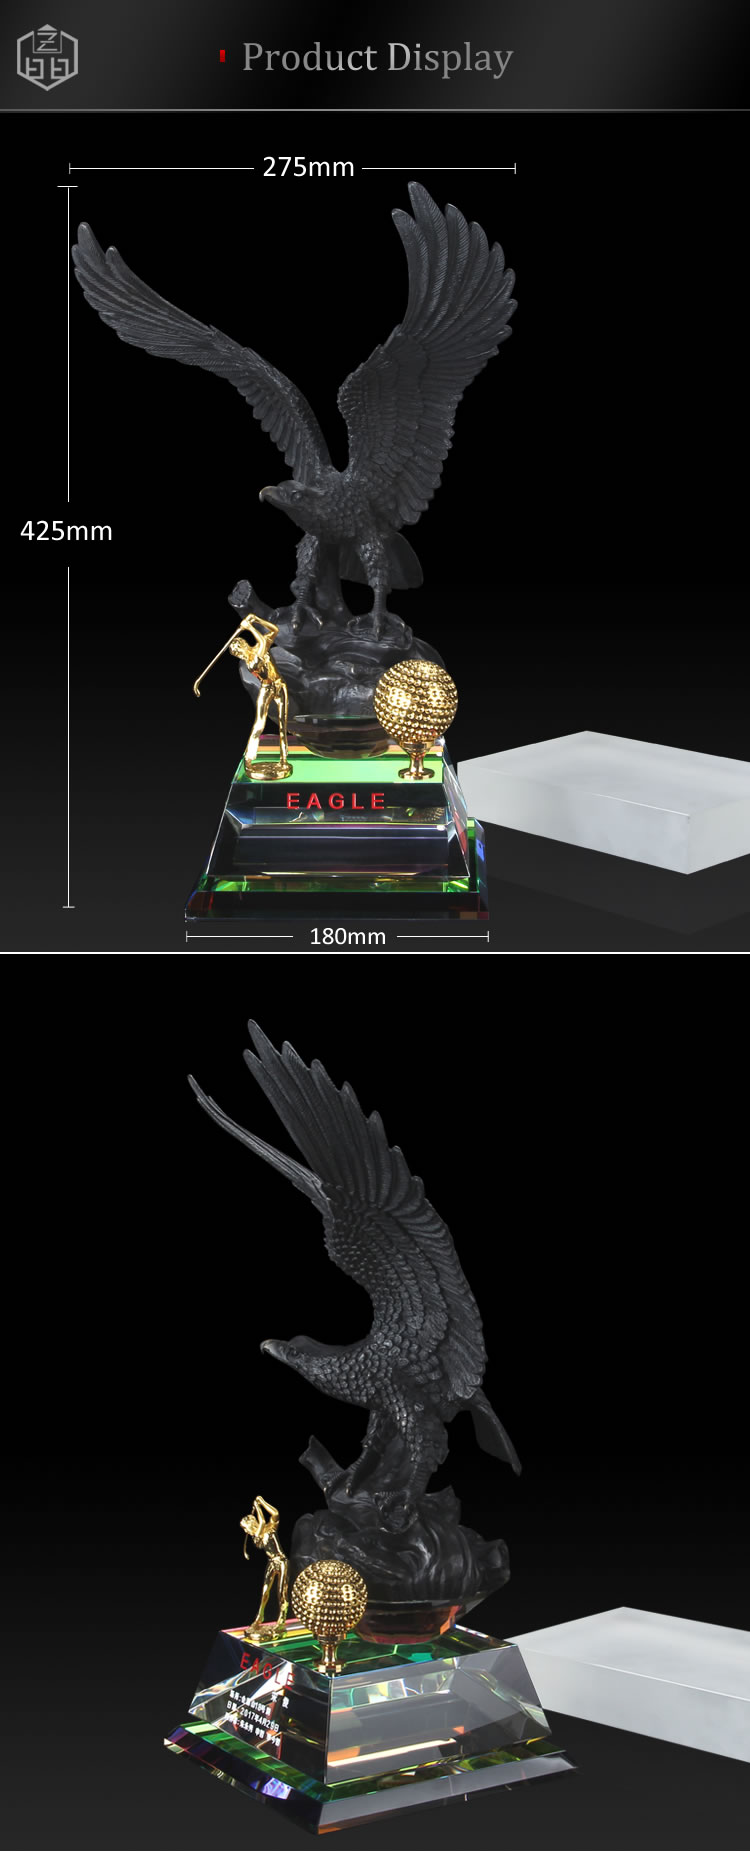 FengShui Sport Golf Price Trophy With Eagle Sculpture For Home Decor